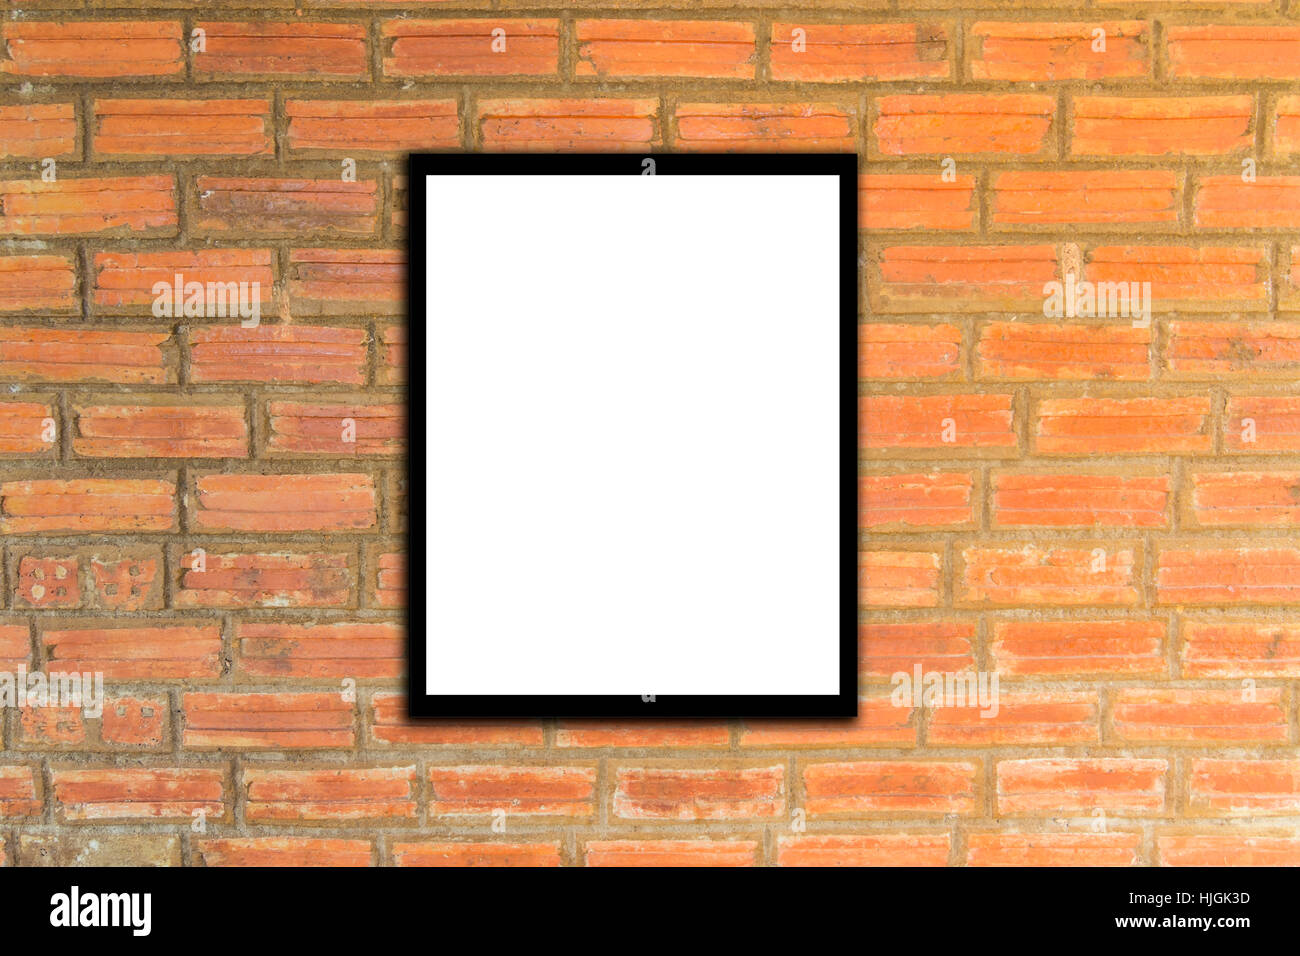 Mock Up Poster Frame And Brick Wall Hipster Or Vintage